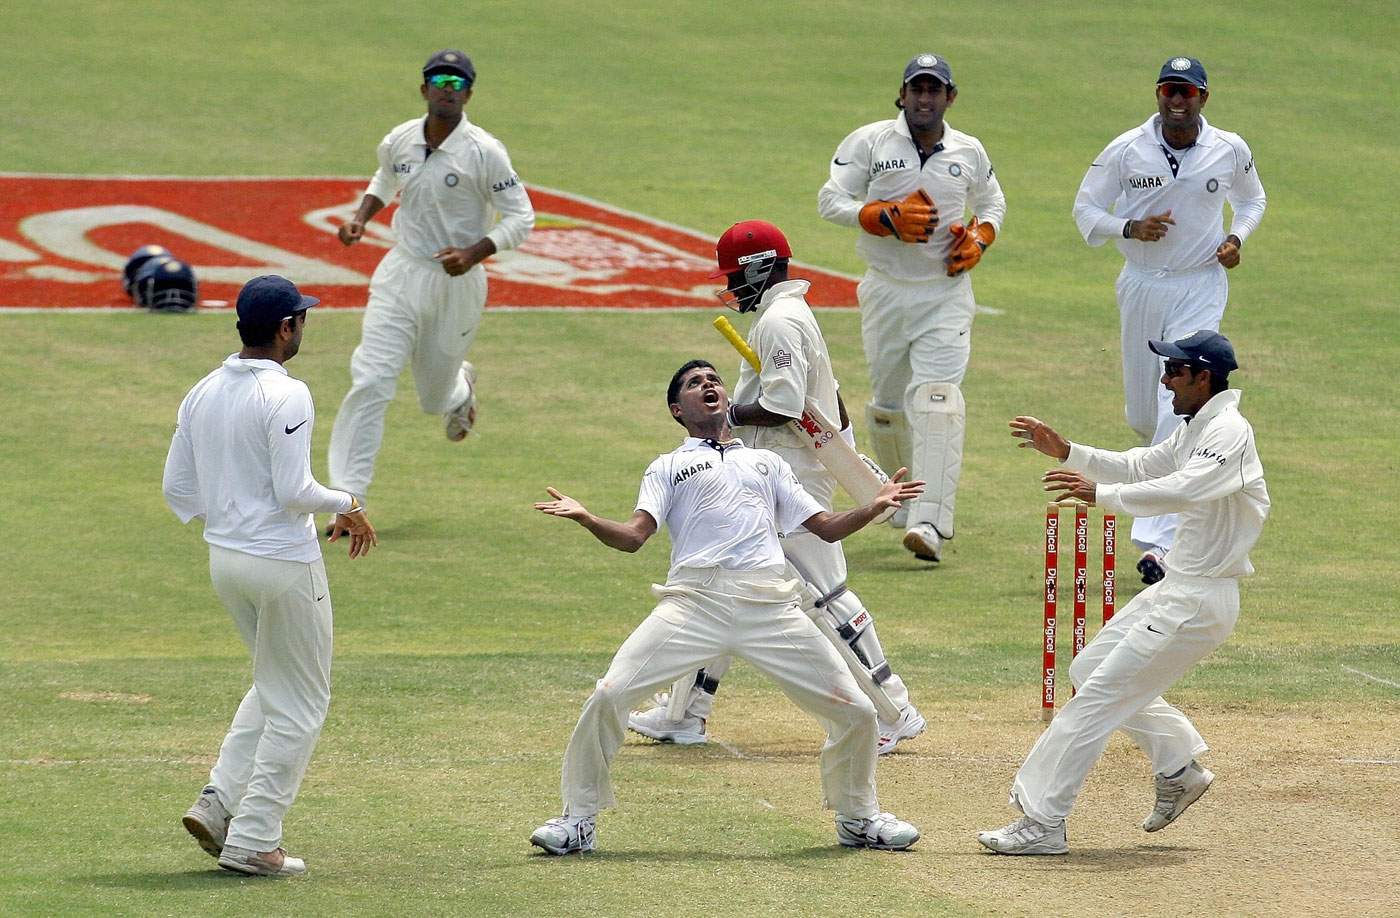 Lara who? Sreesanth had his fair share of prize scalps in Test cricket